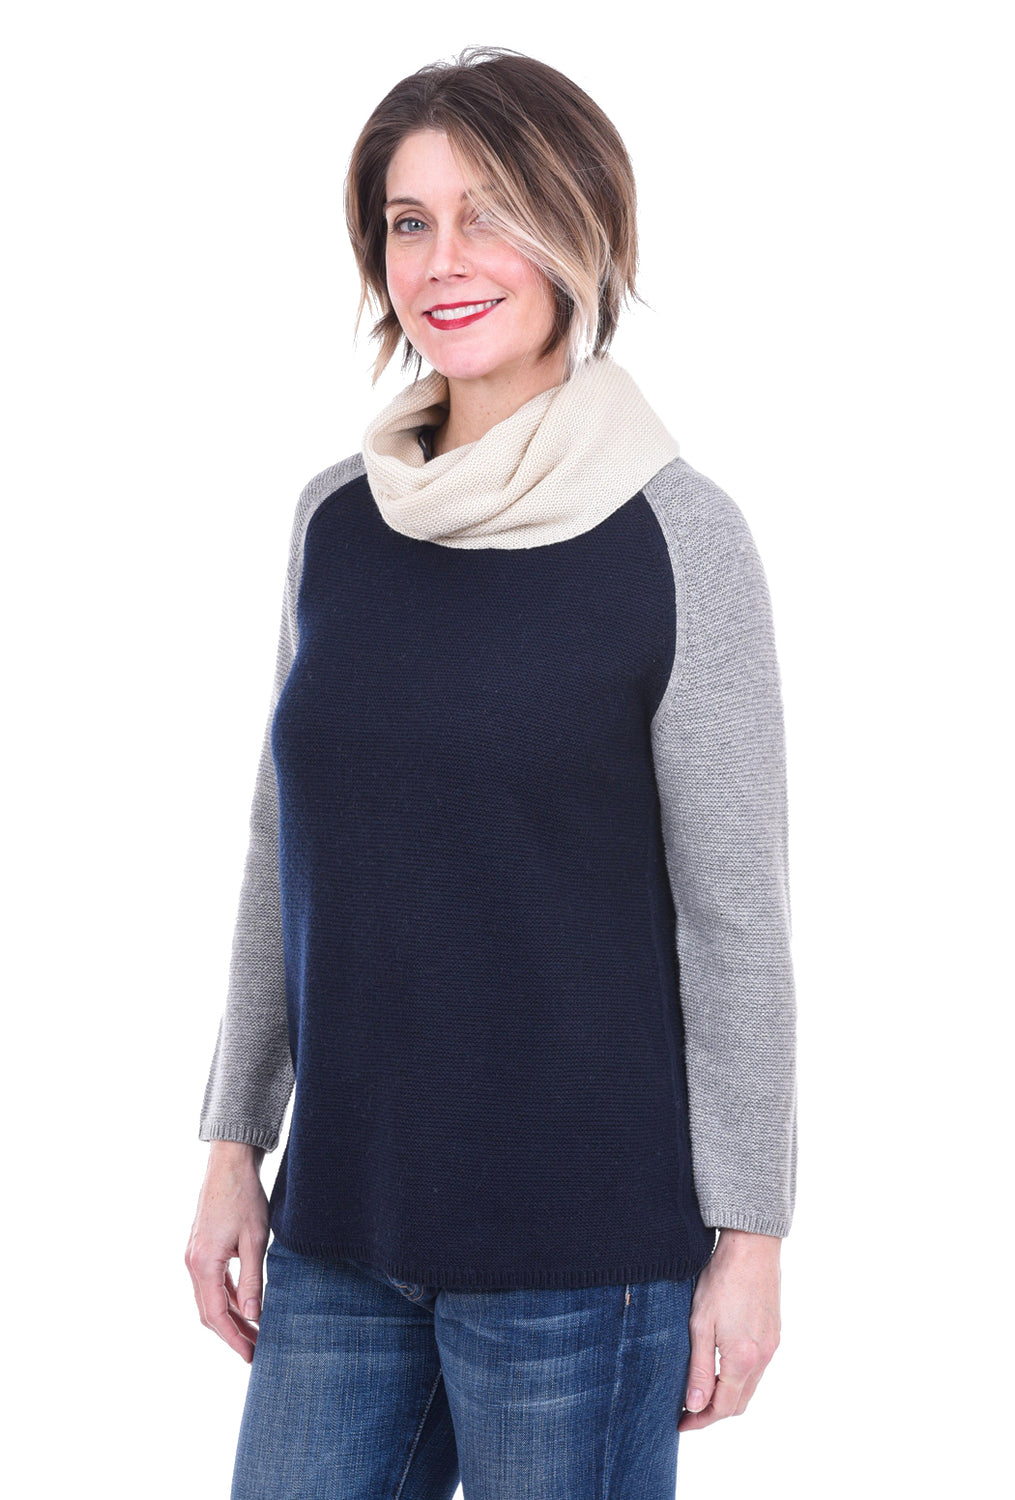 Sisters Color Trio Cowl Sweater, Denim